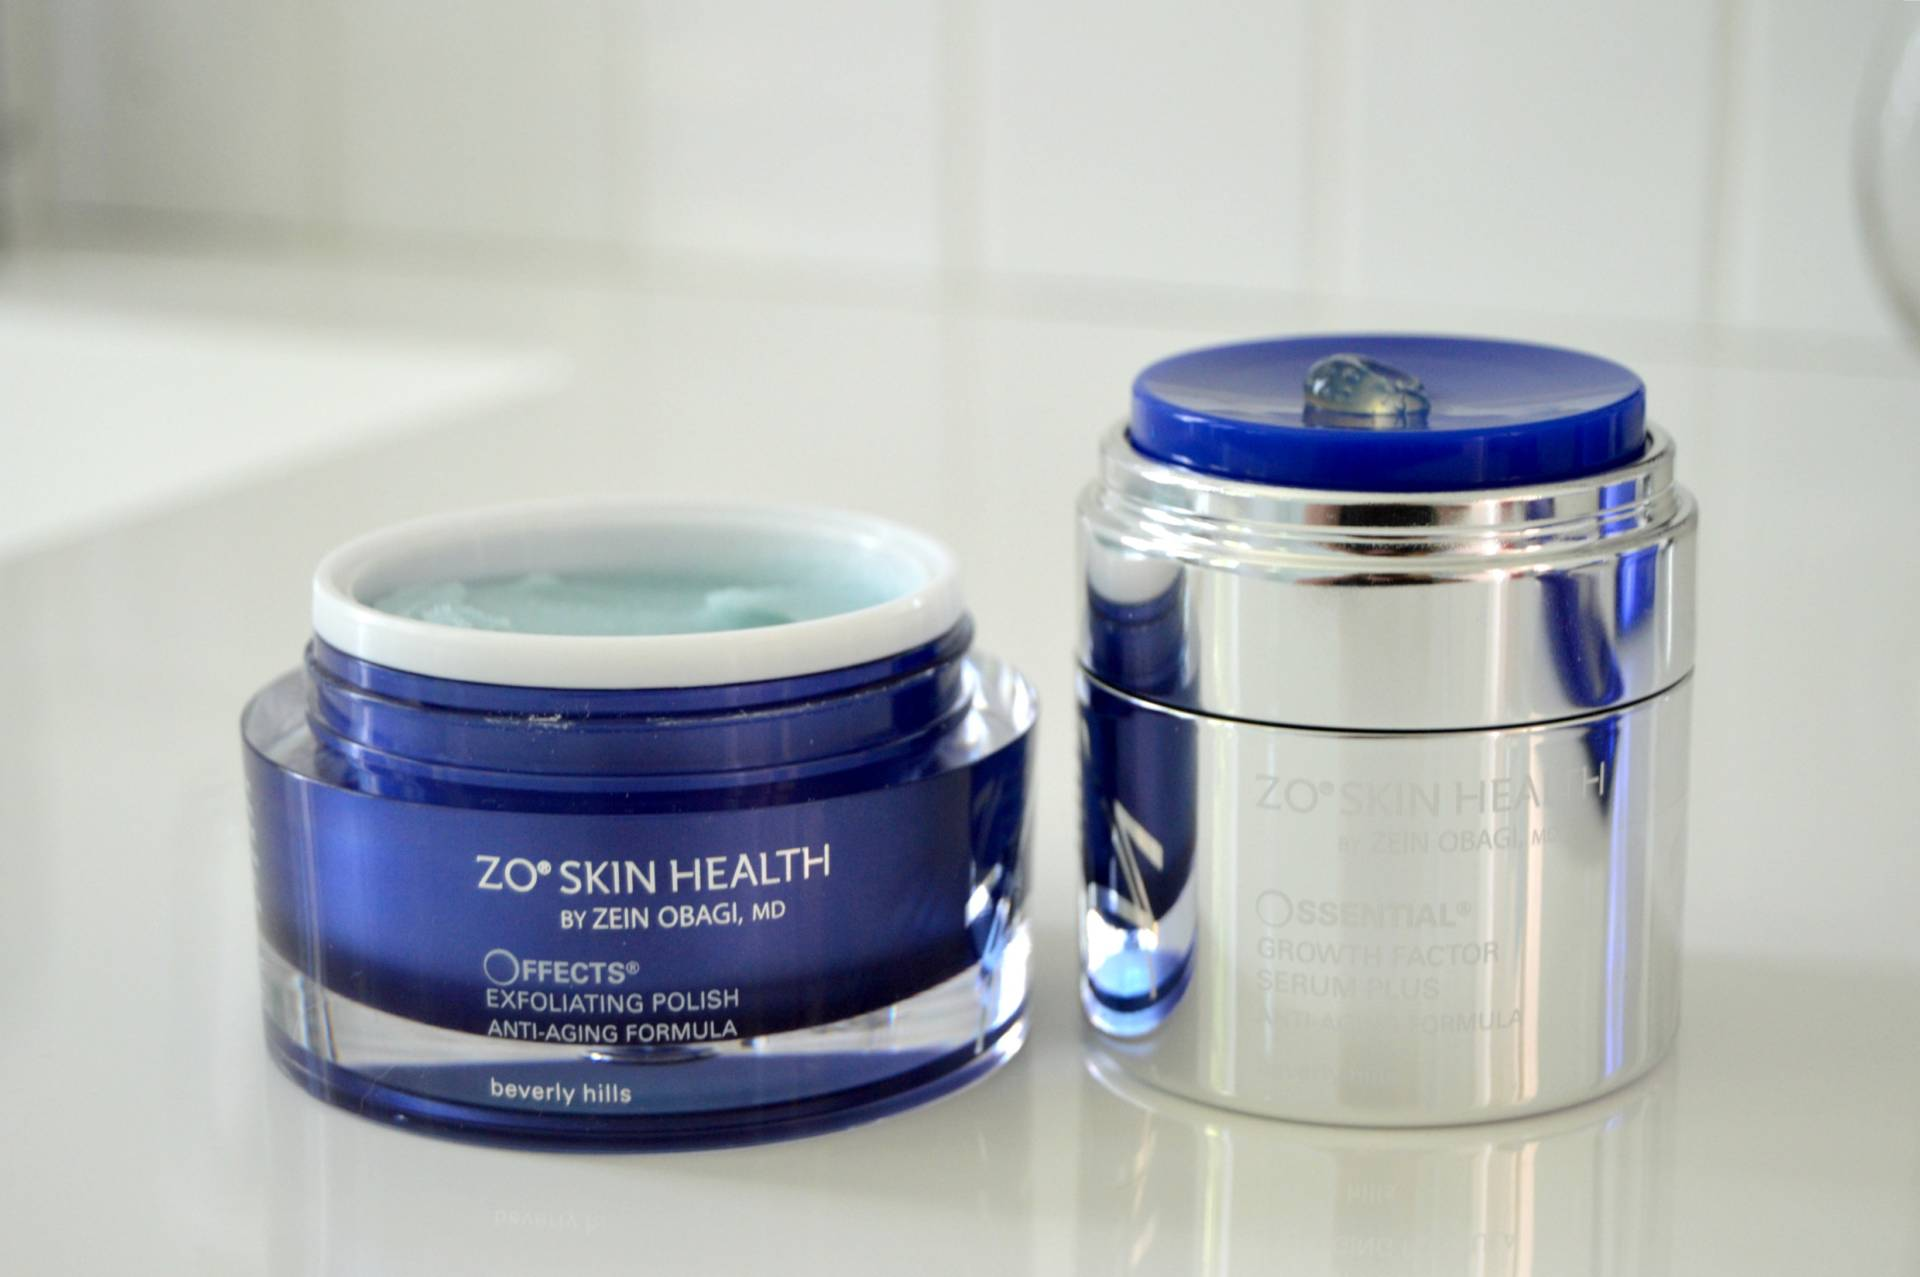 zo-skin-health-offects-exfoliating-polish-review-inhautepursuit